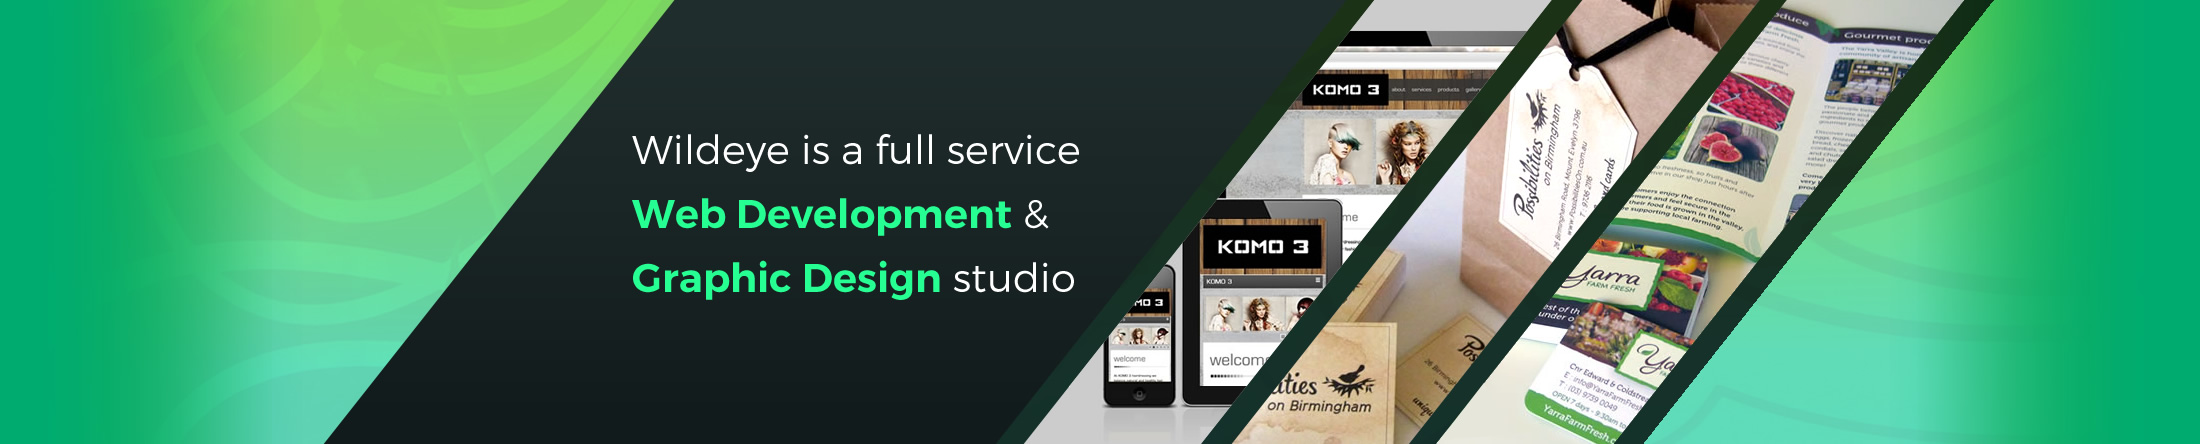 Web Development and Graphic Design